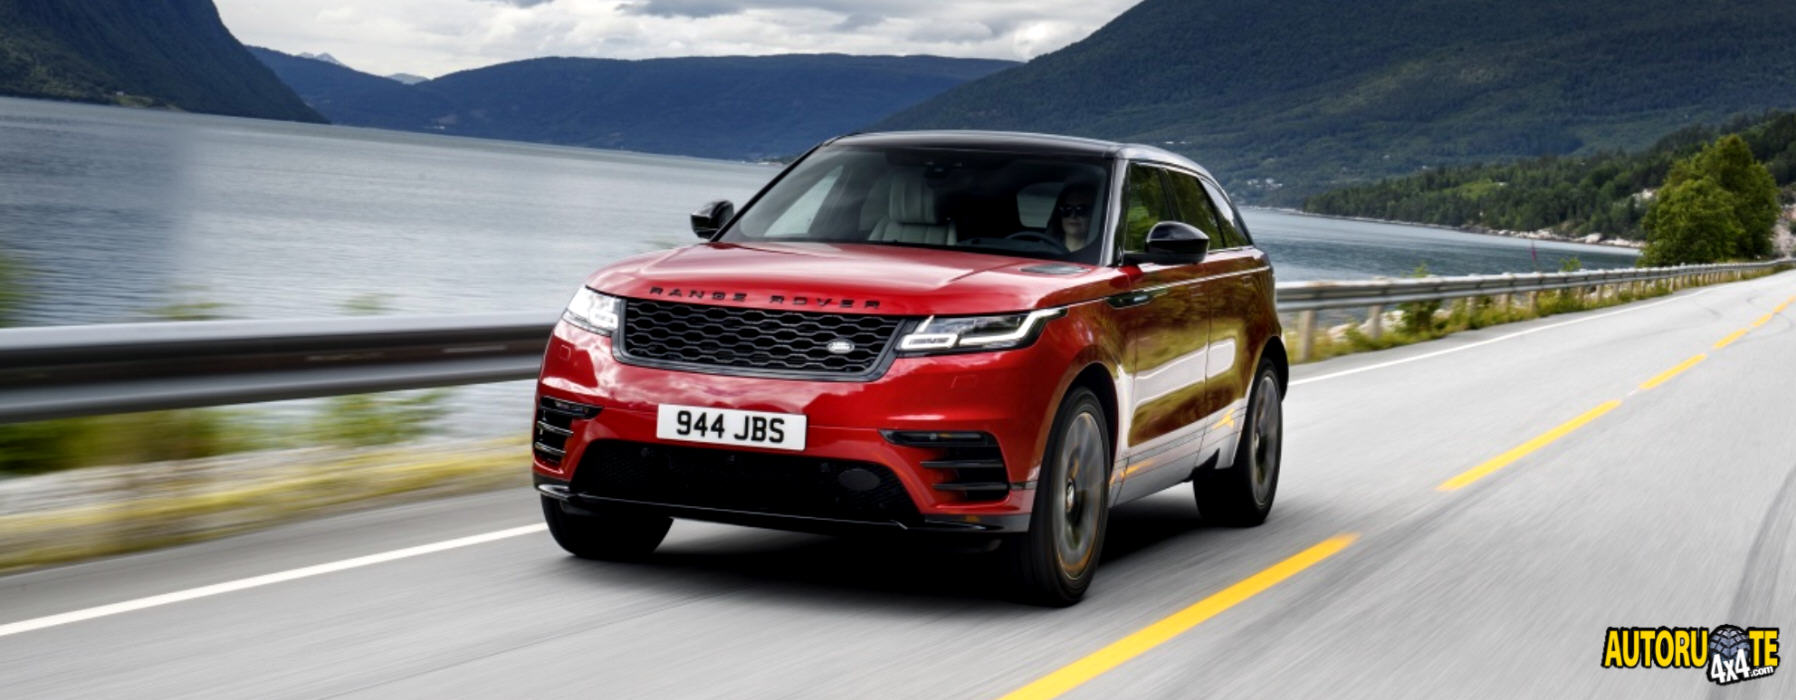 RR Velar finalista in 2 categorie dei World Car Awards